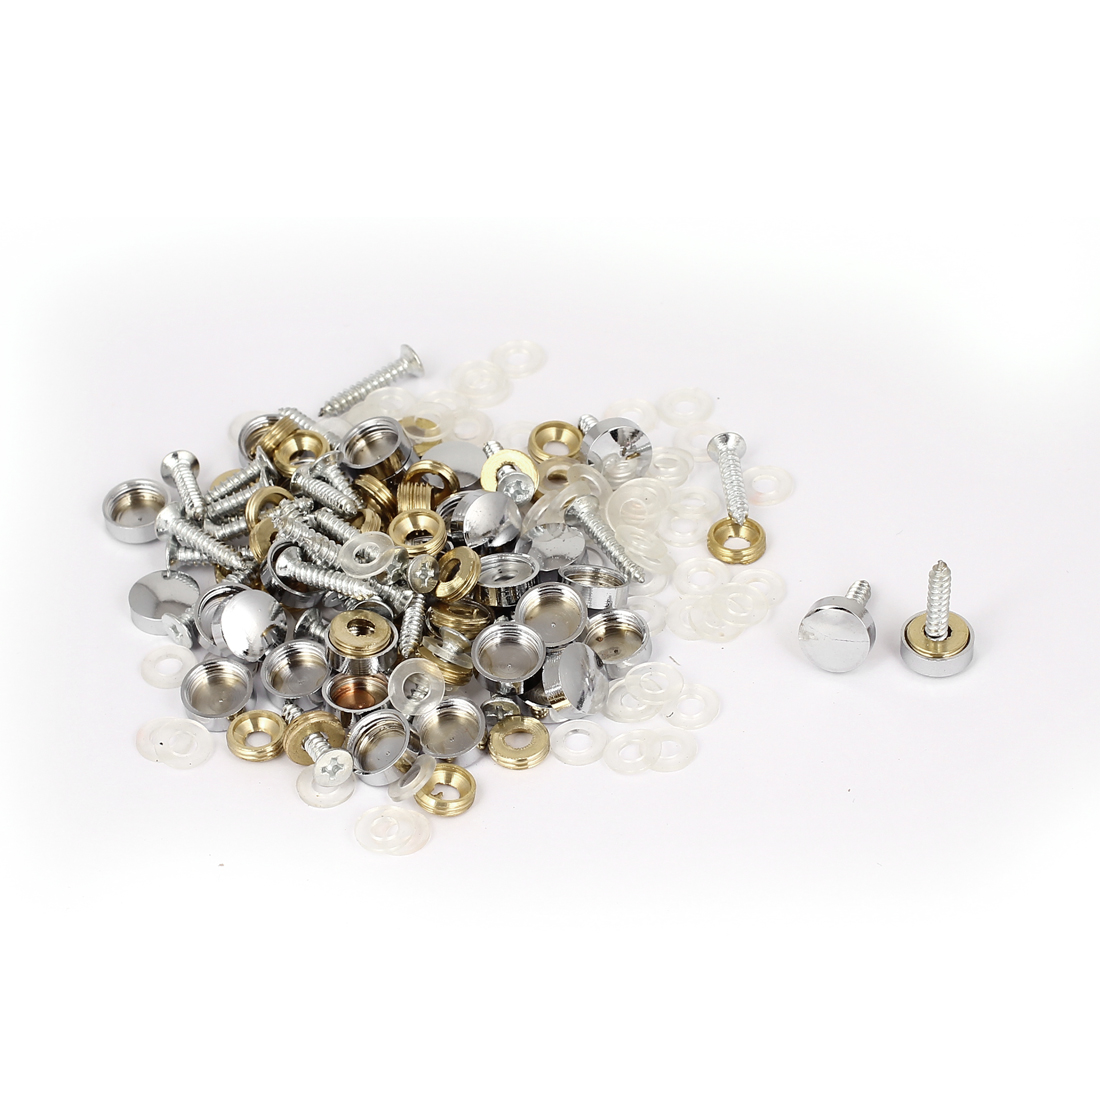 Wardrobes Mirror 11mm Diameter Silver Tone Round Cap Screw Nails 52 Sets